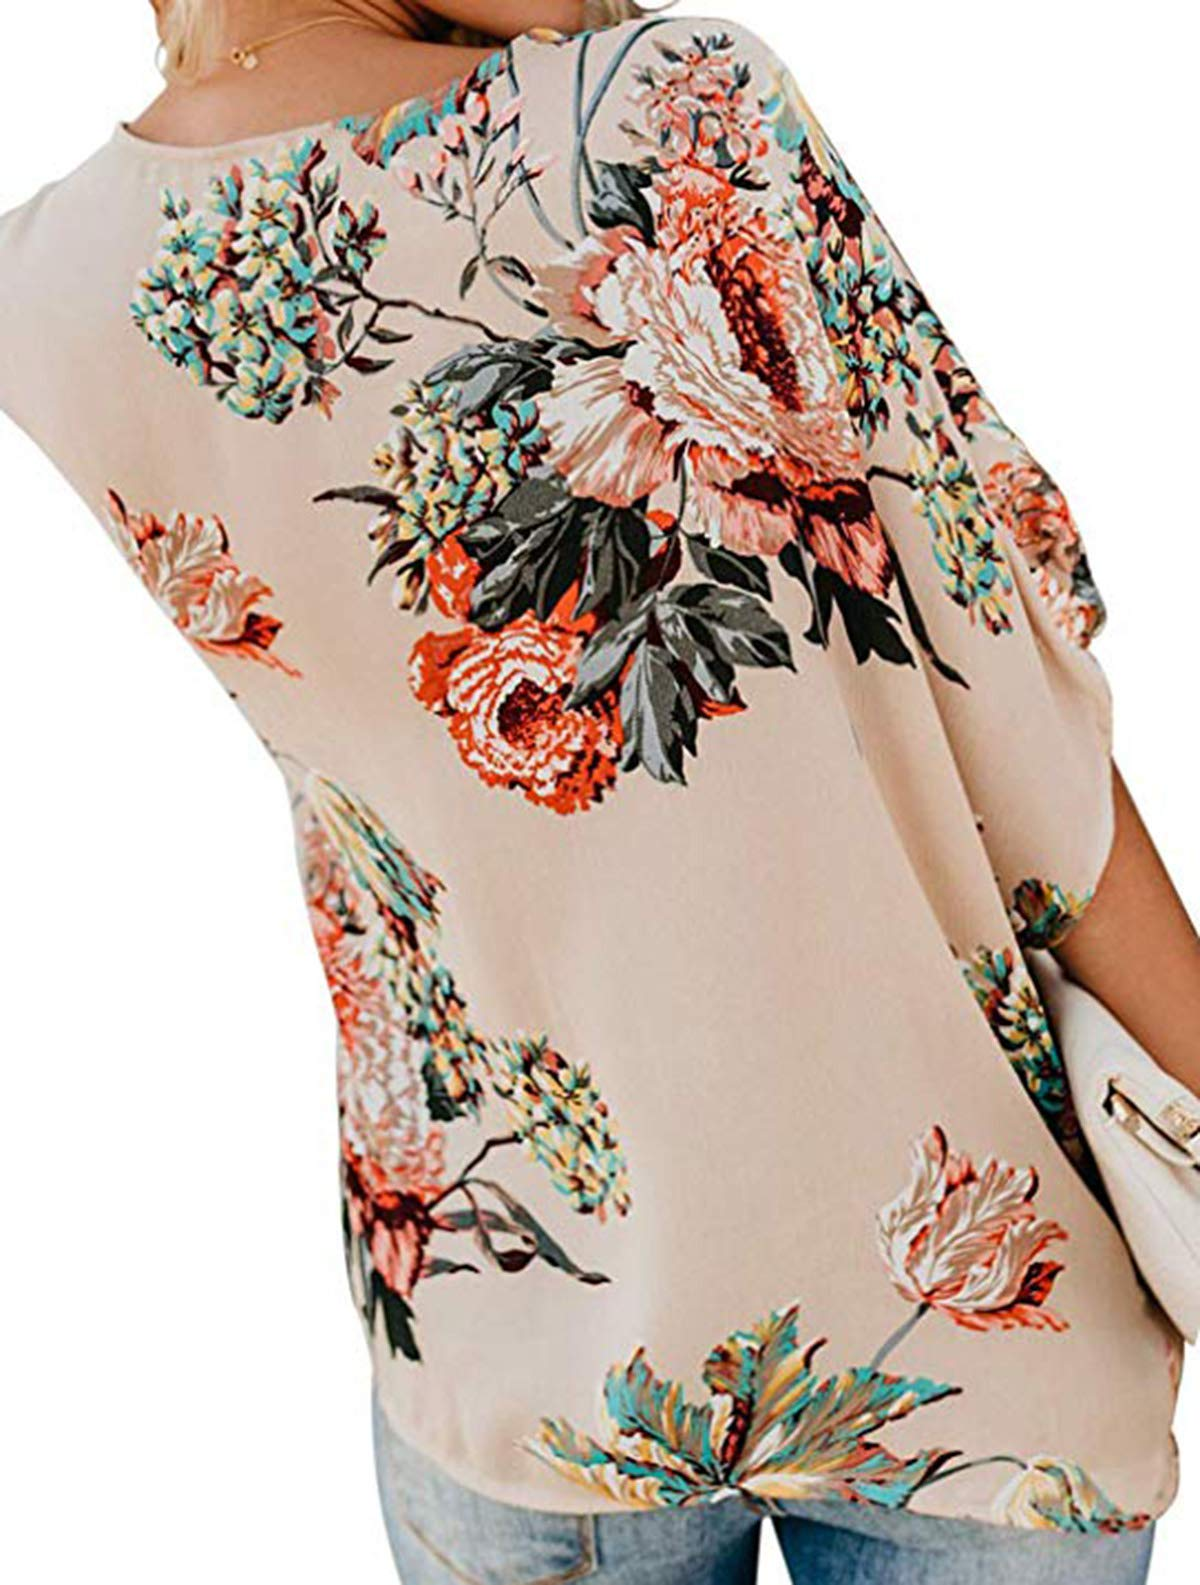 Horyliin Floral Tops for Women 3/4 Sleeve, Juniors Deep V Neck Fashion 2019 Work Blouses Tie Dye Pleated Front Knotted Tunic Shirts Apricot XL